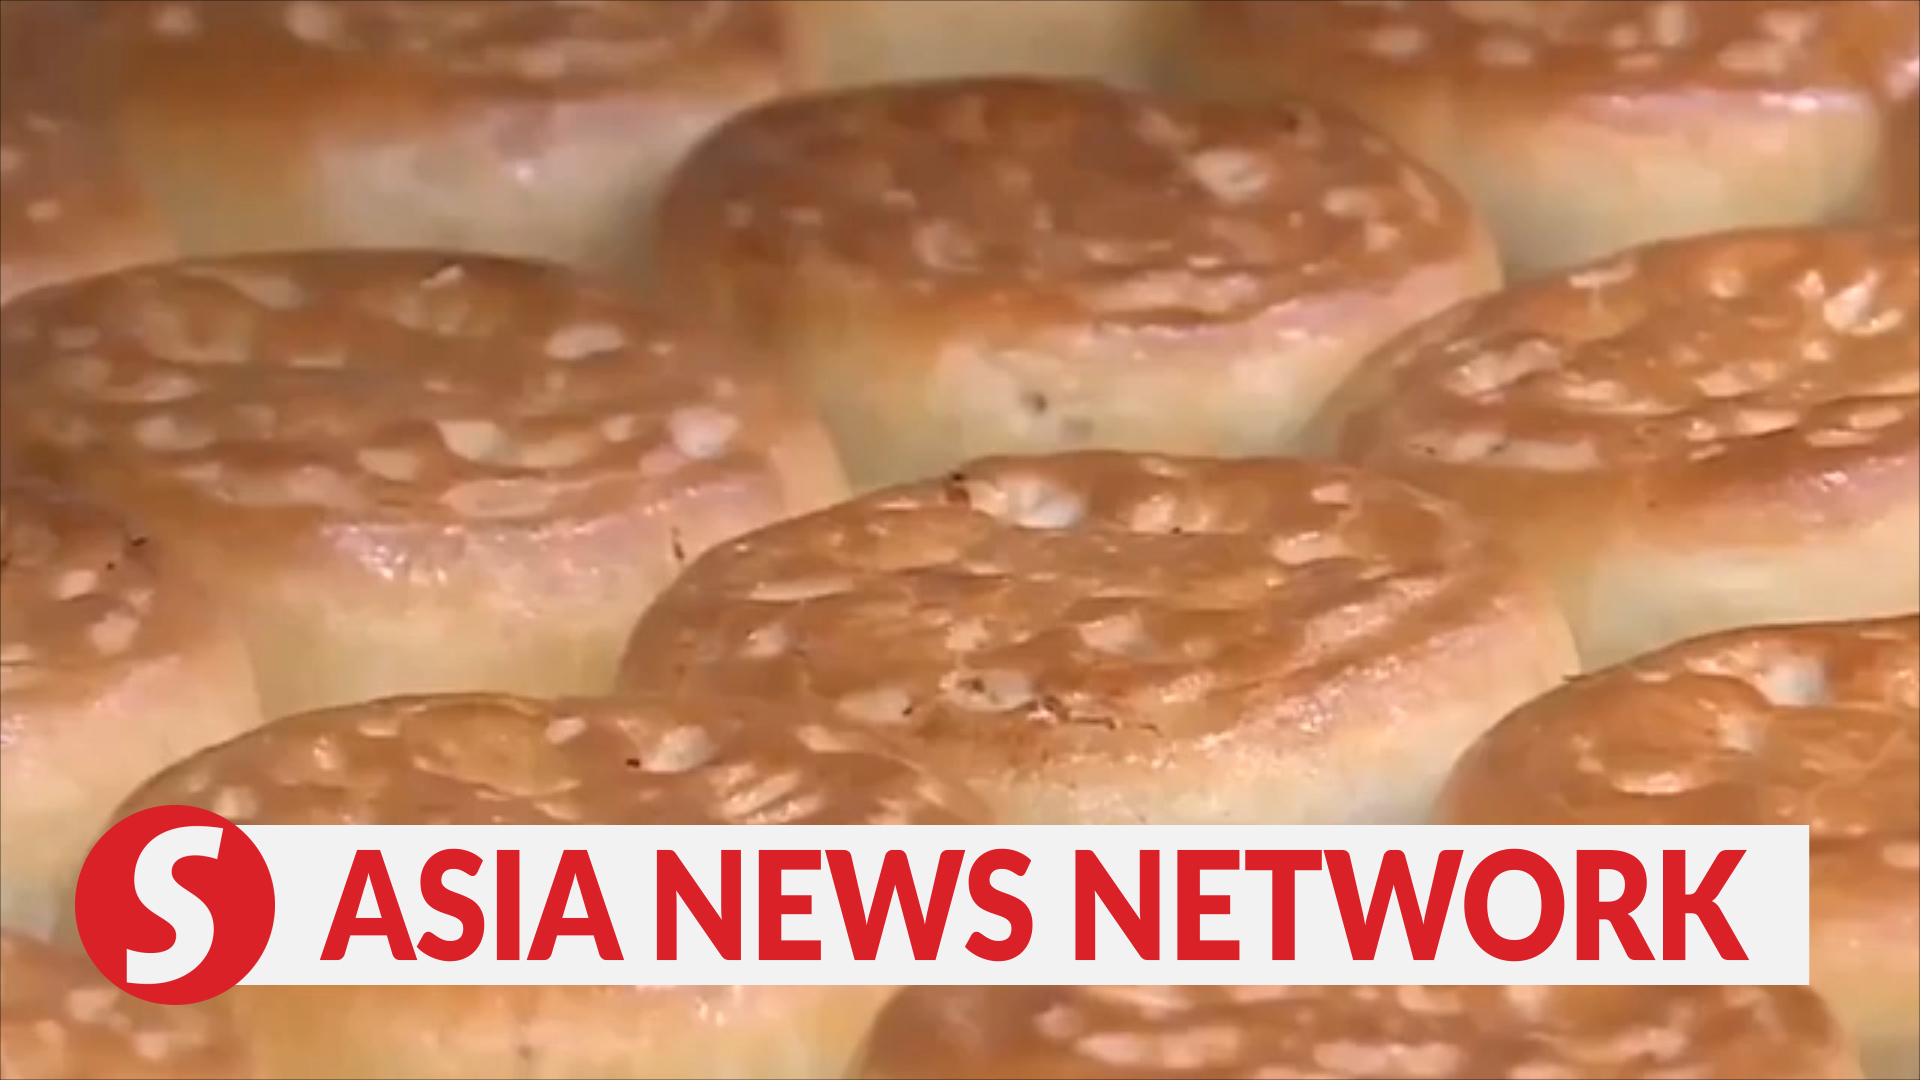 Vietnam News | New ways to sell mooncakes amid Covid-19 pandemic